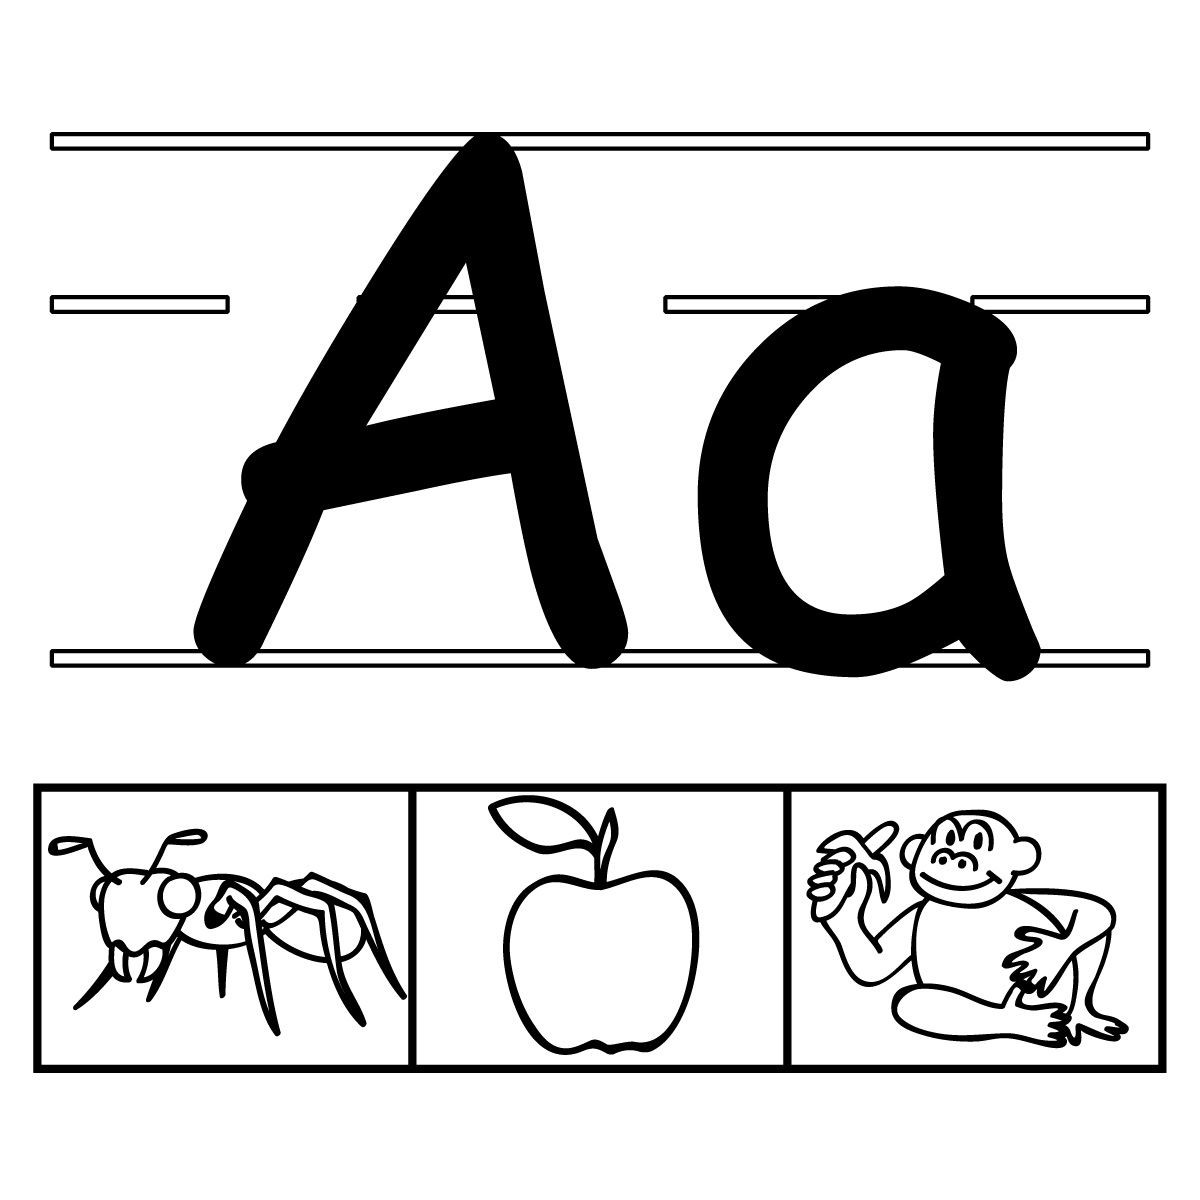 alphabet printables with 3 images for each letter (scroll